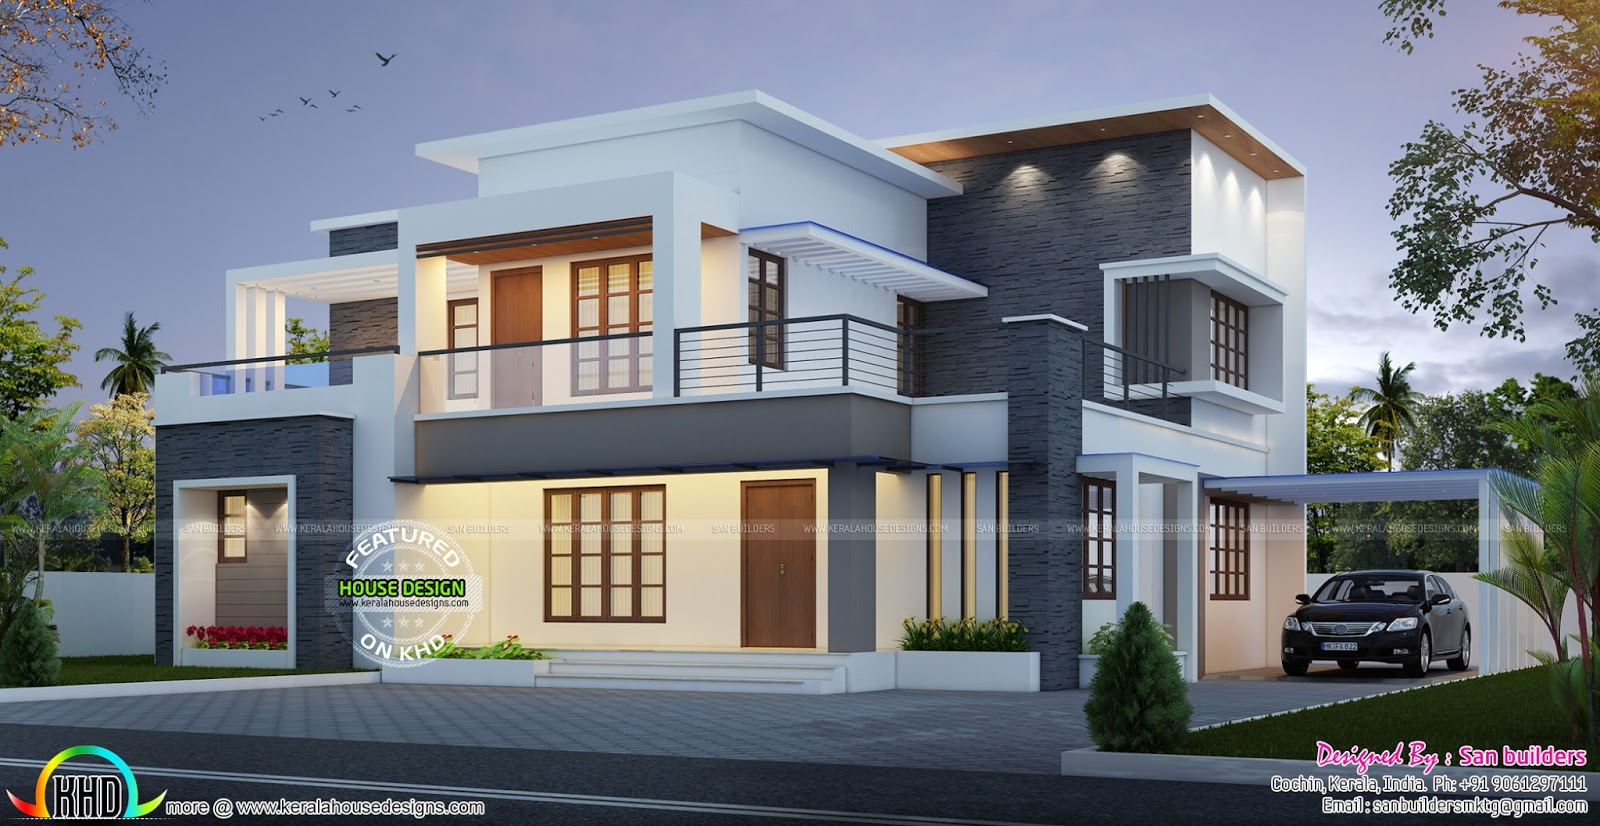 House plan and elevation by san builders kerala home for Home pland